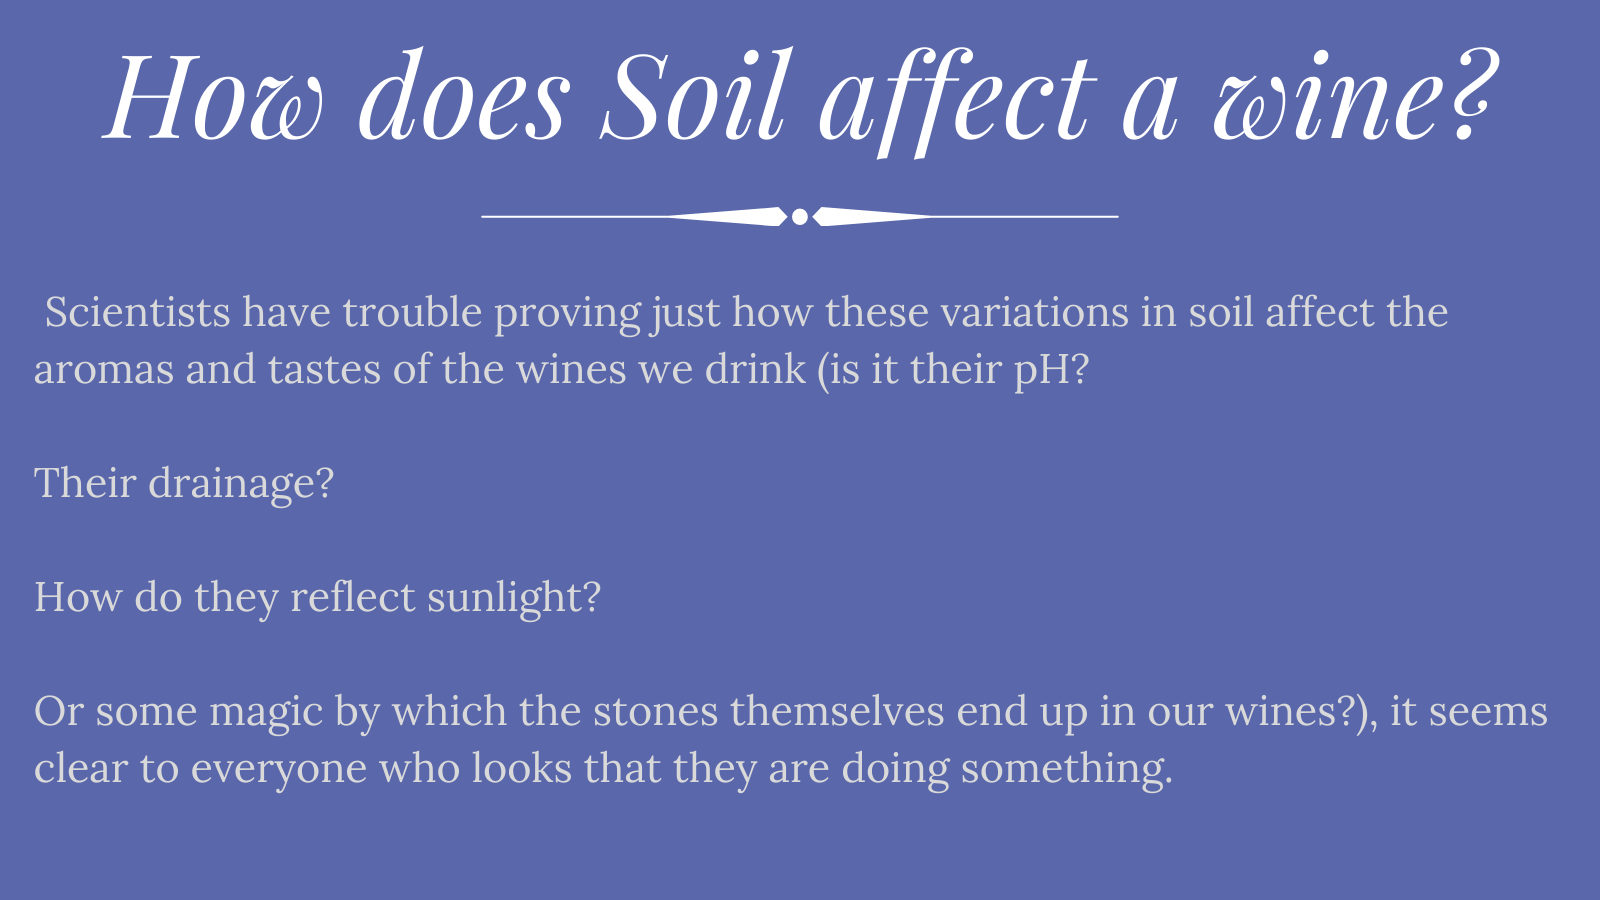 How does Soil affect a wine?